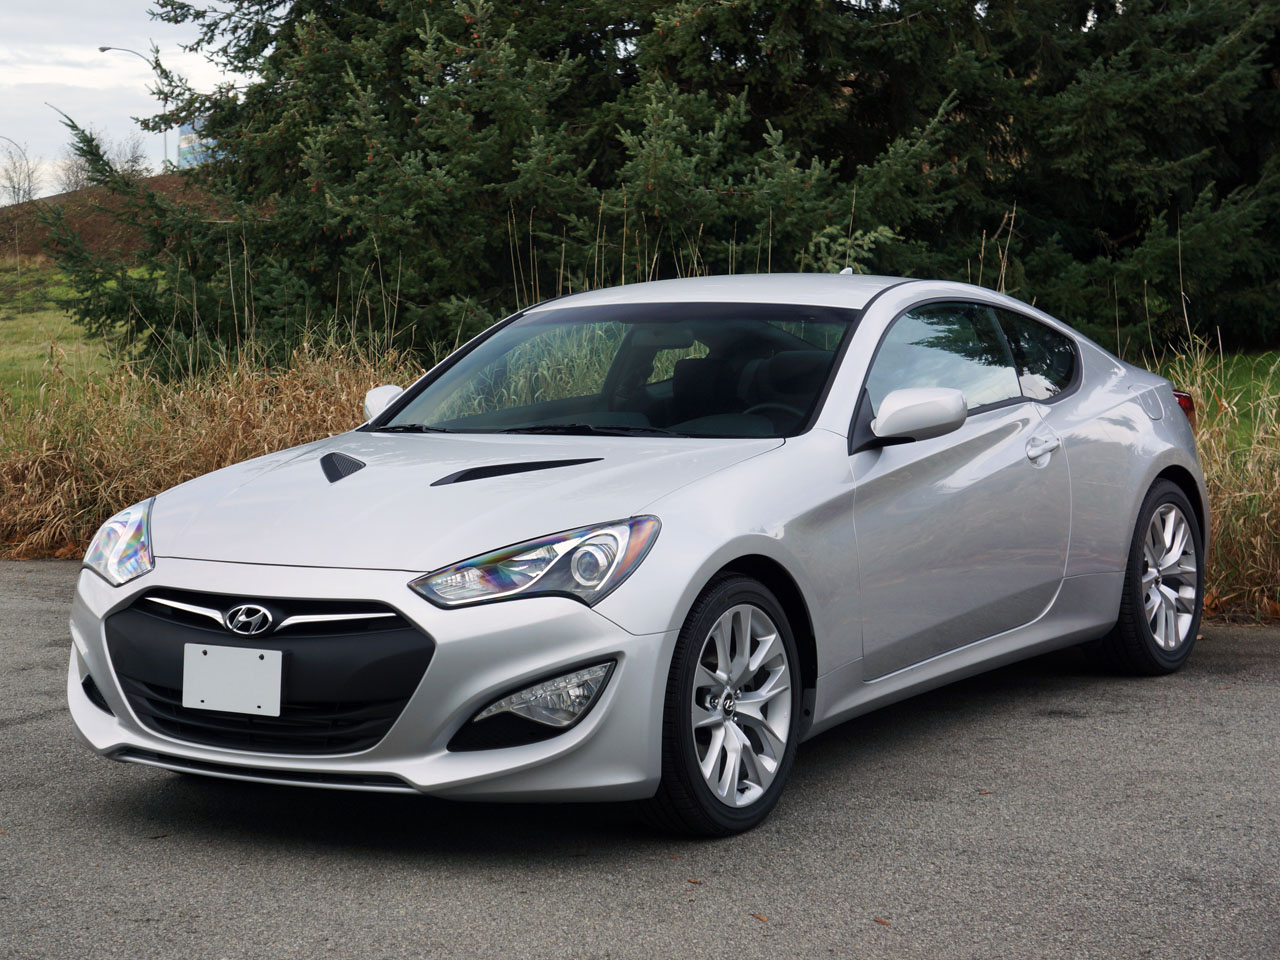 2014 Hyundai Genesis Coupe 2.0 T >> 2014 Hyundai Genesis Coupe 2.0T Road Test Review | CarCostCanada